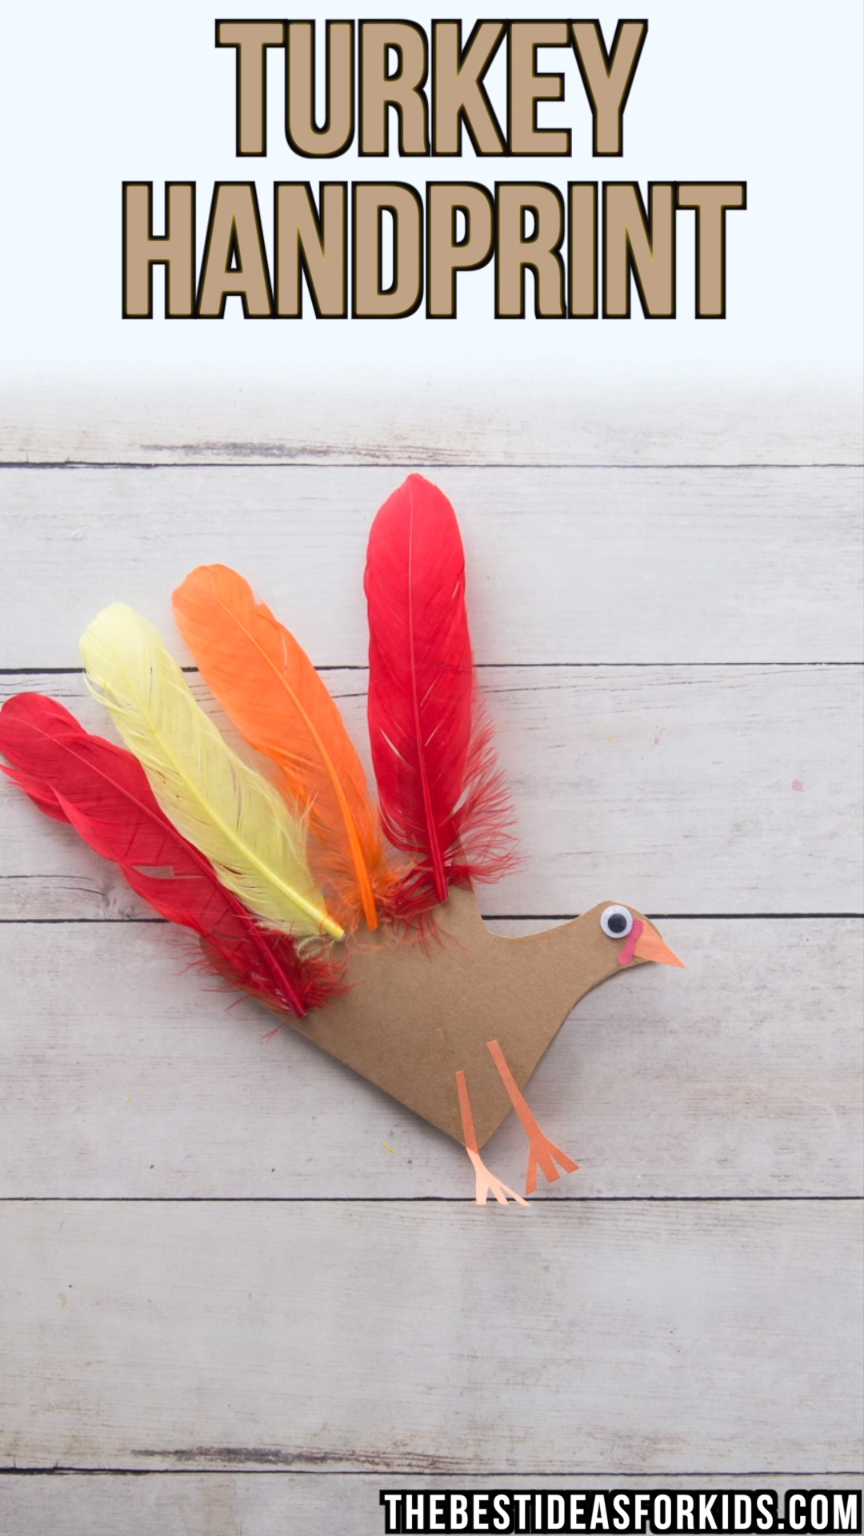 Turkey Handprint Craft With Poem - The Best Ideas for Kids